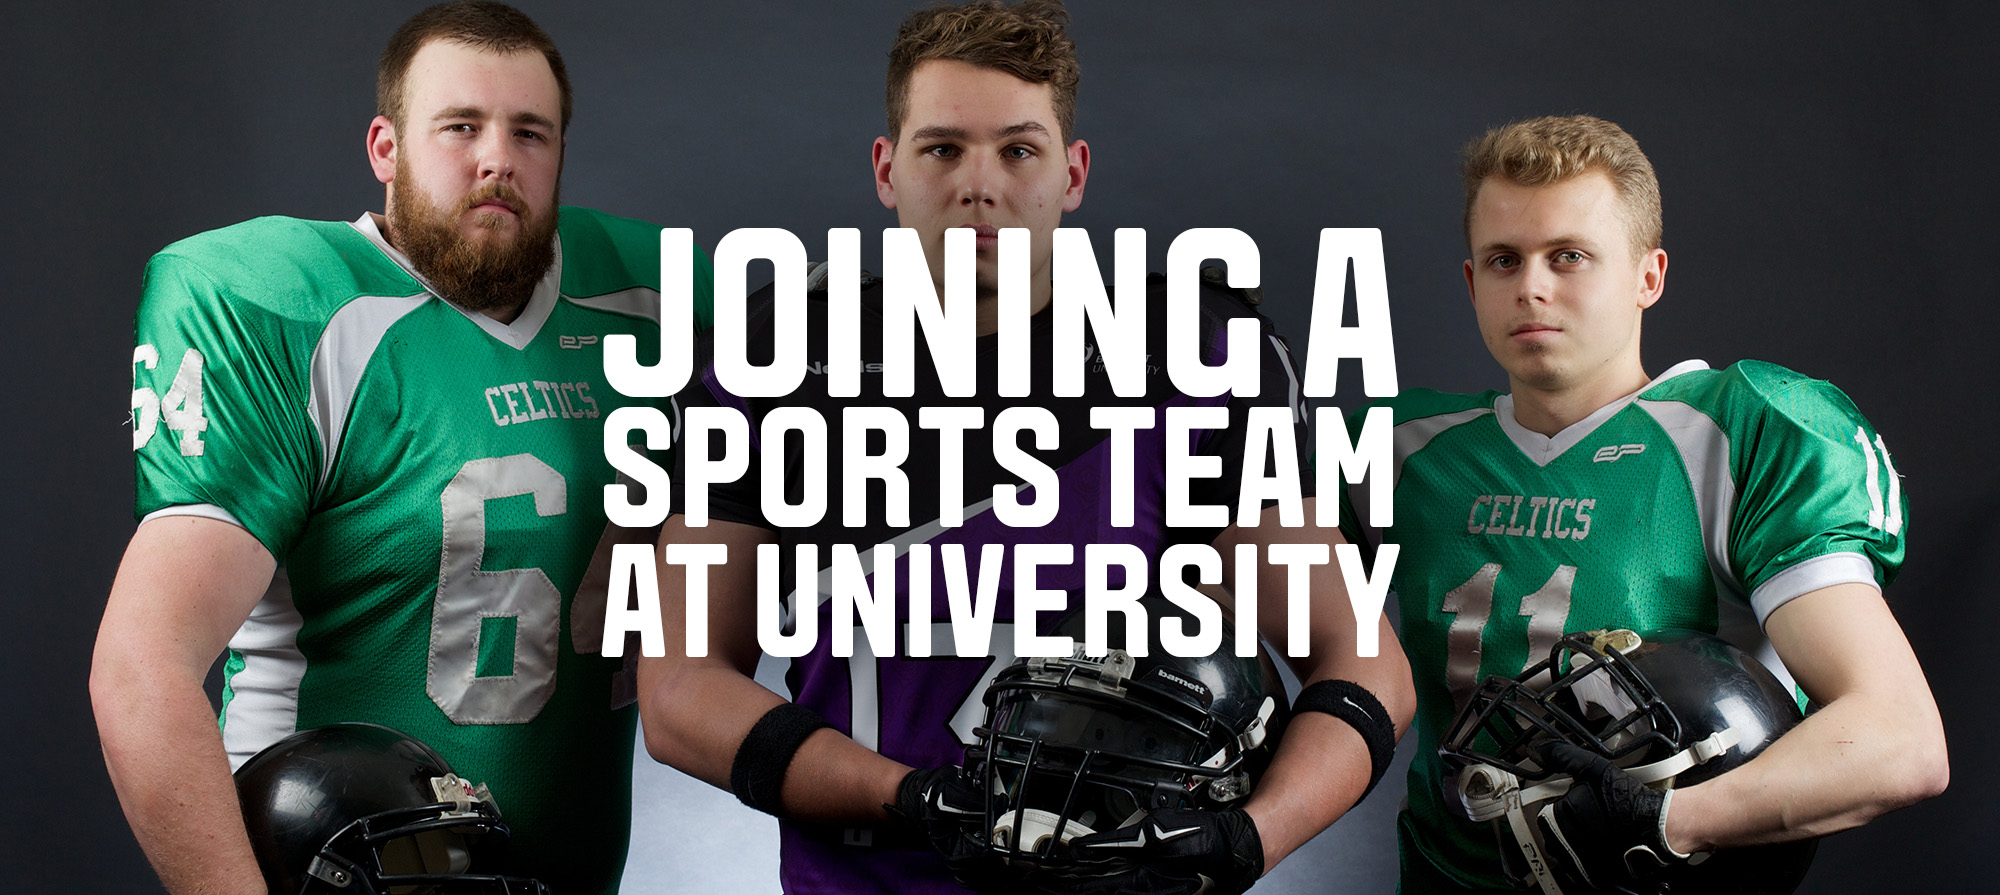 Joining a sports team at university